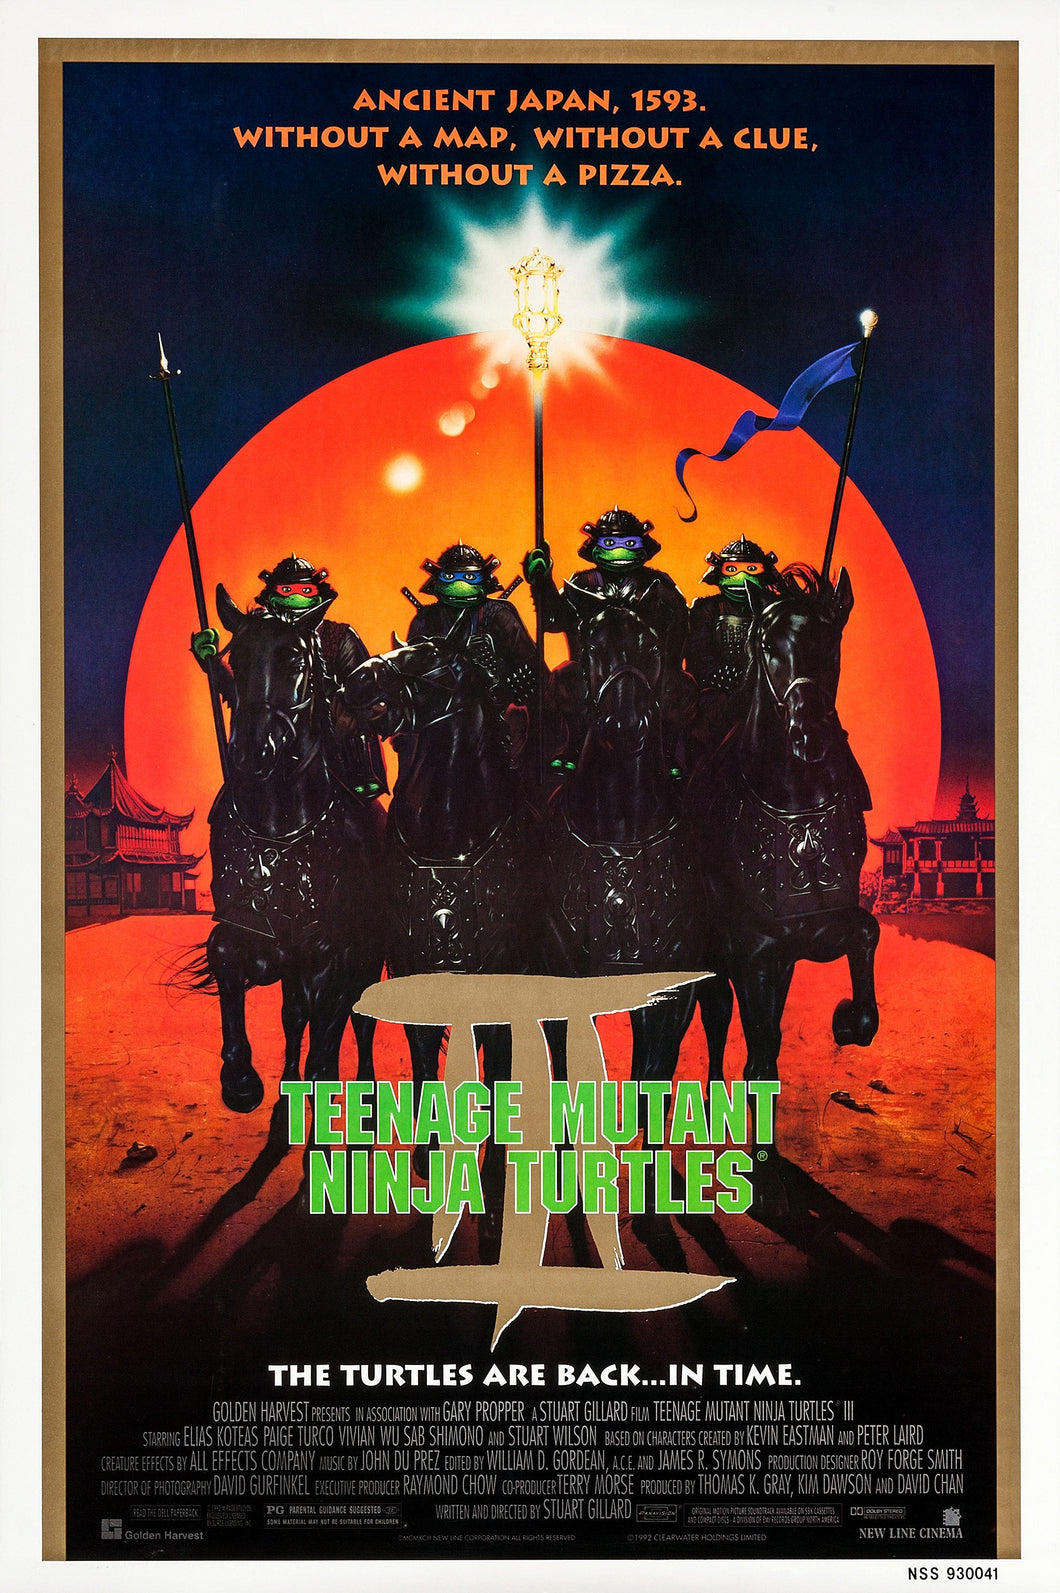 Poster Pelicula Teenage Mutant Ninja Turtles III